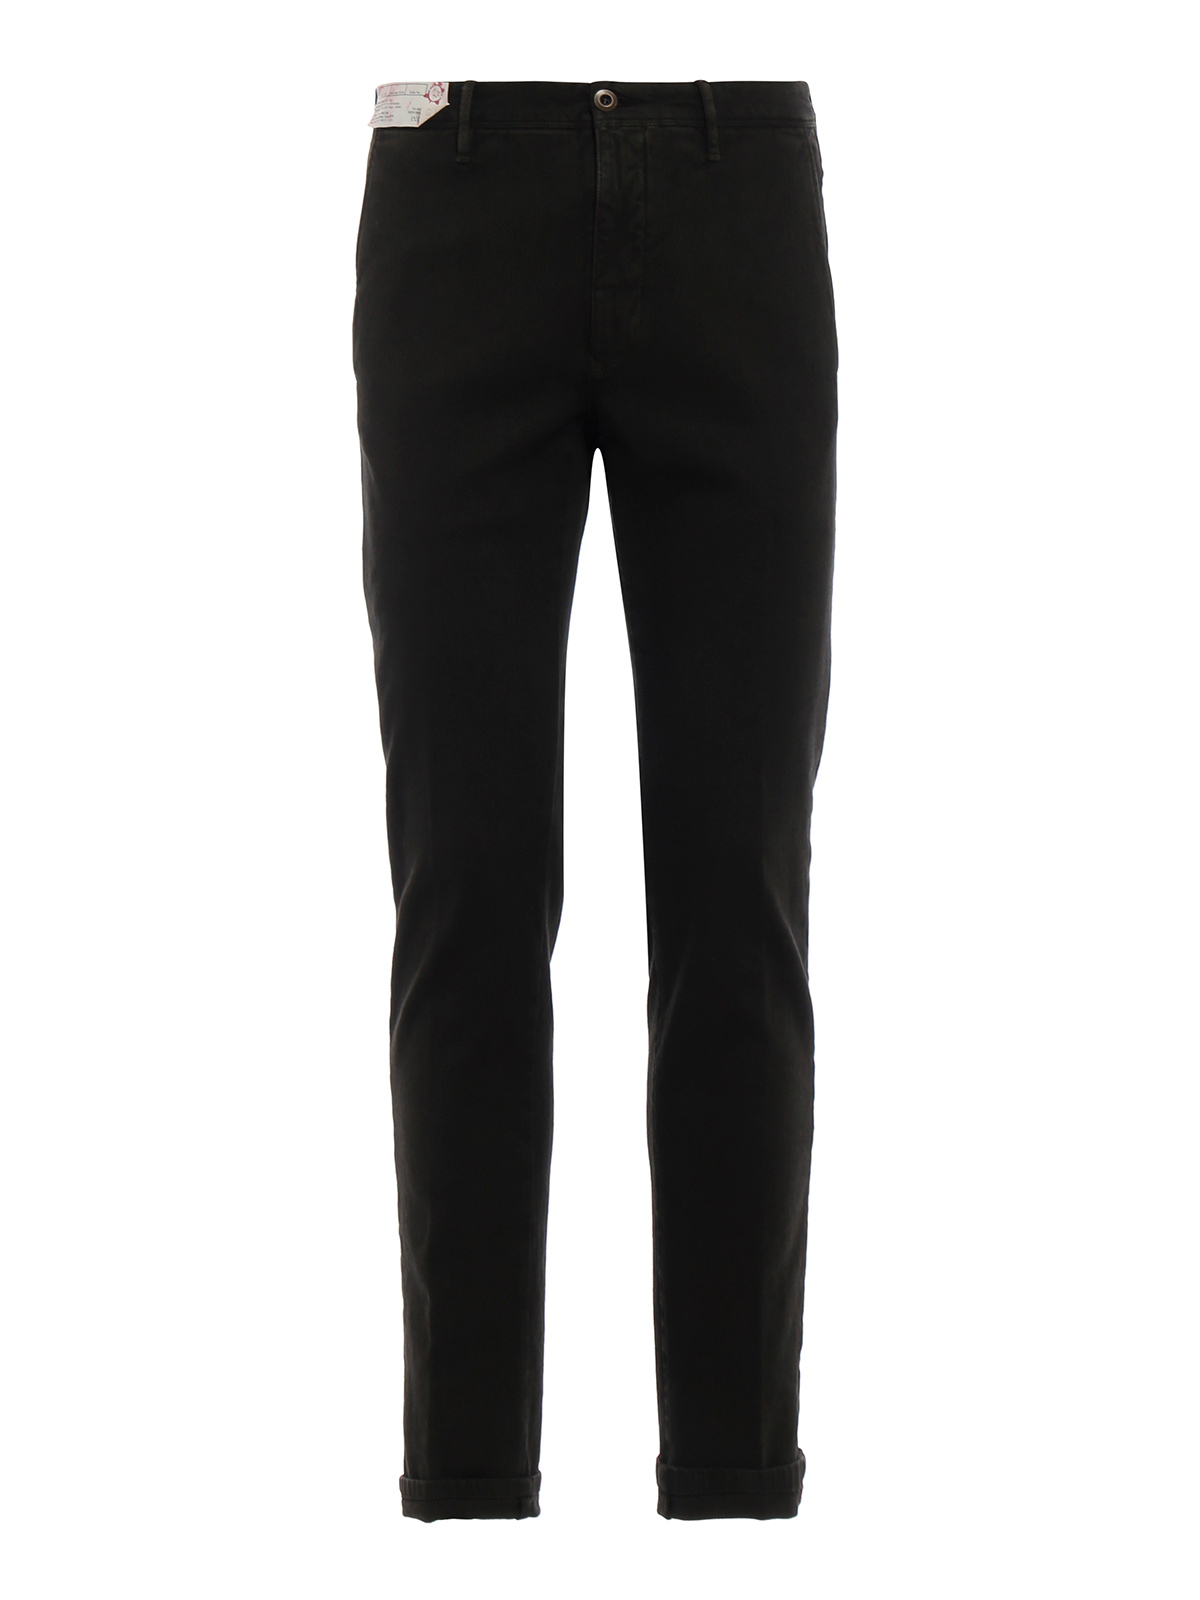 Picture of INCOTEX | Men's Stretch Cotton Trousers